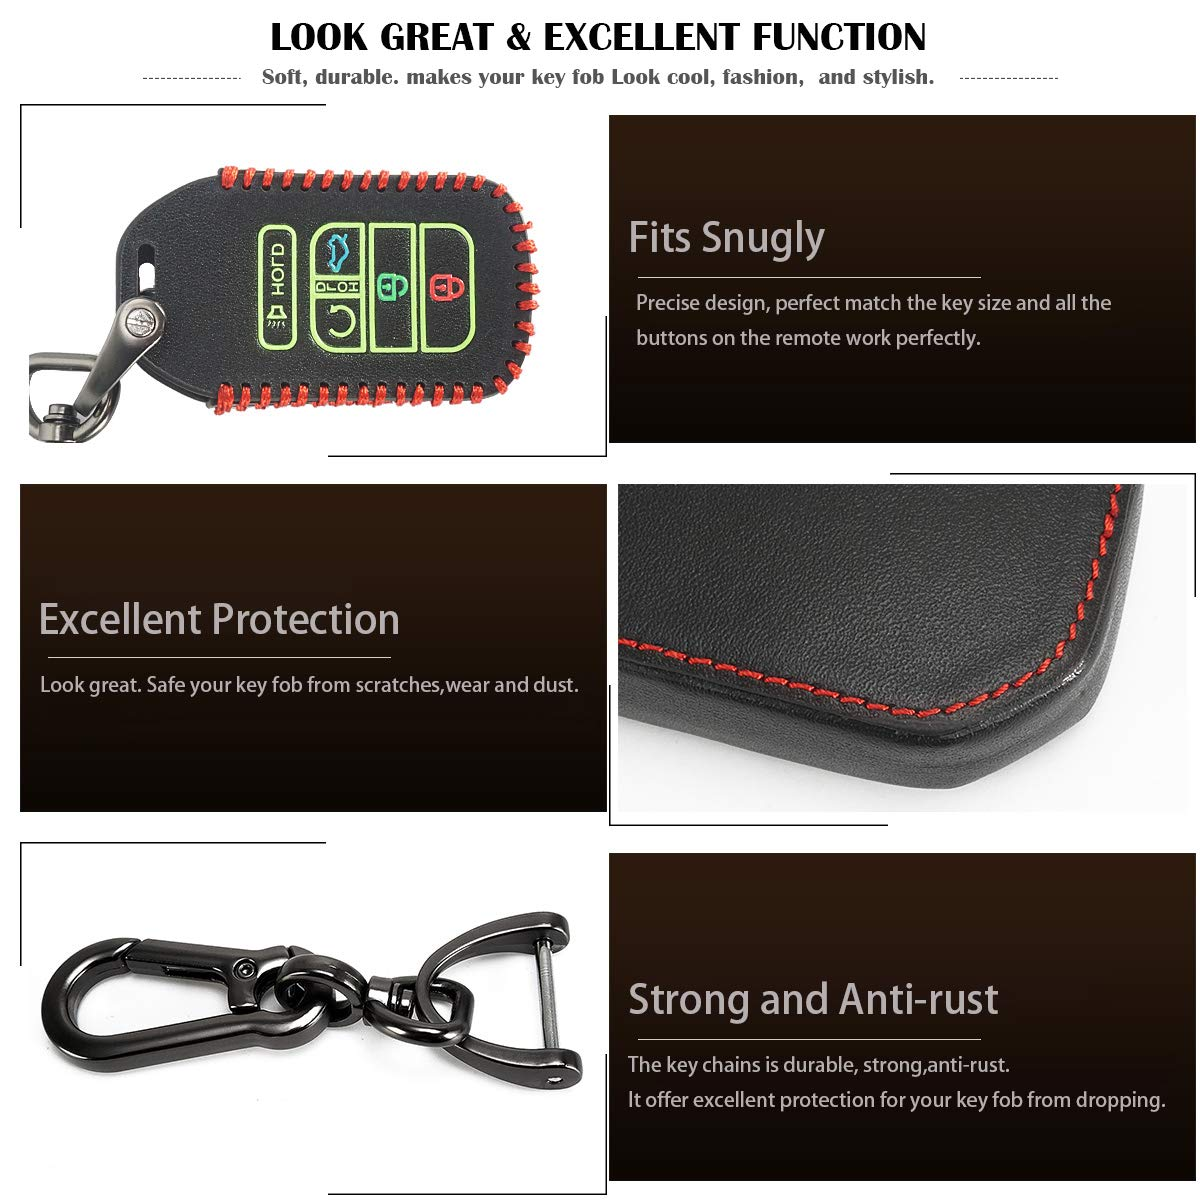 Auovo Key Fob Cover Case Holder for 2019 2018 Honda Odyssey Elite EX EXL 5 Buttons Key Fob Remote Protector Keyless Entry Black 5 Buttons